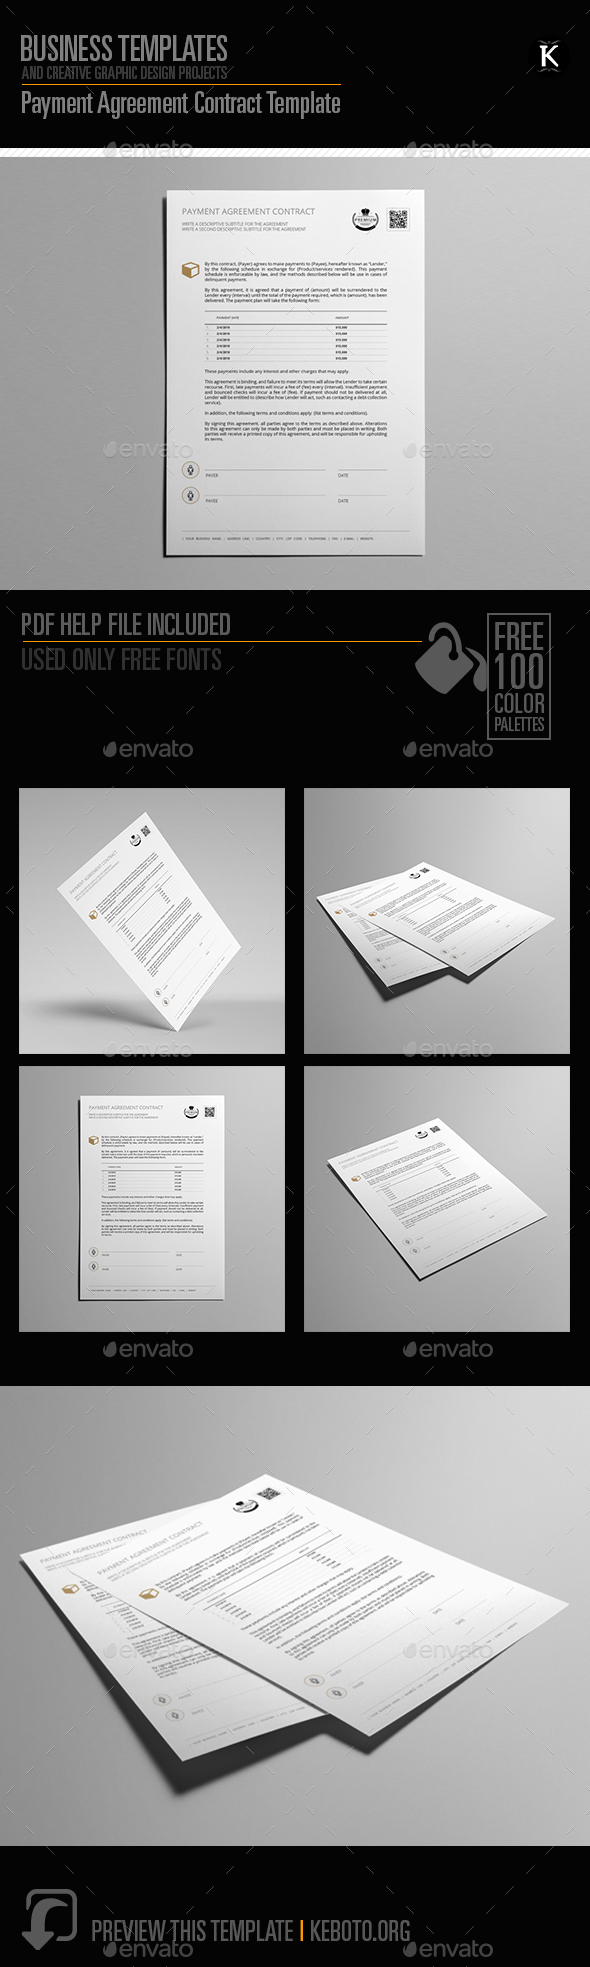 Payment Agreement Contract Template - Miscellaneous Print Templates